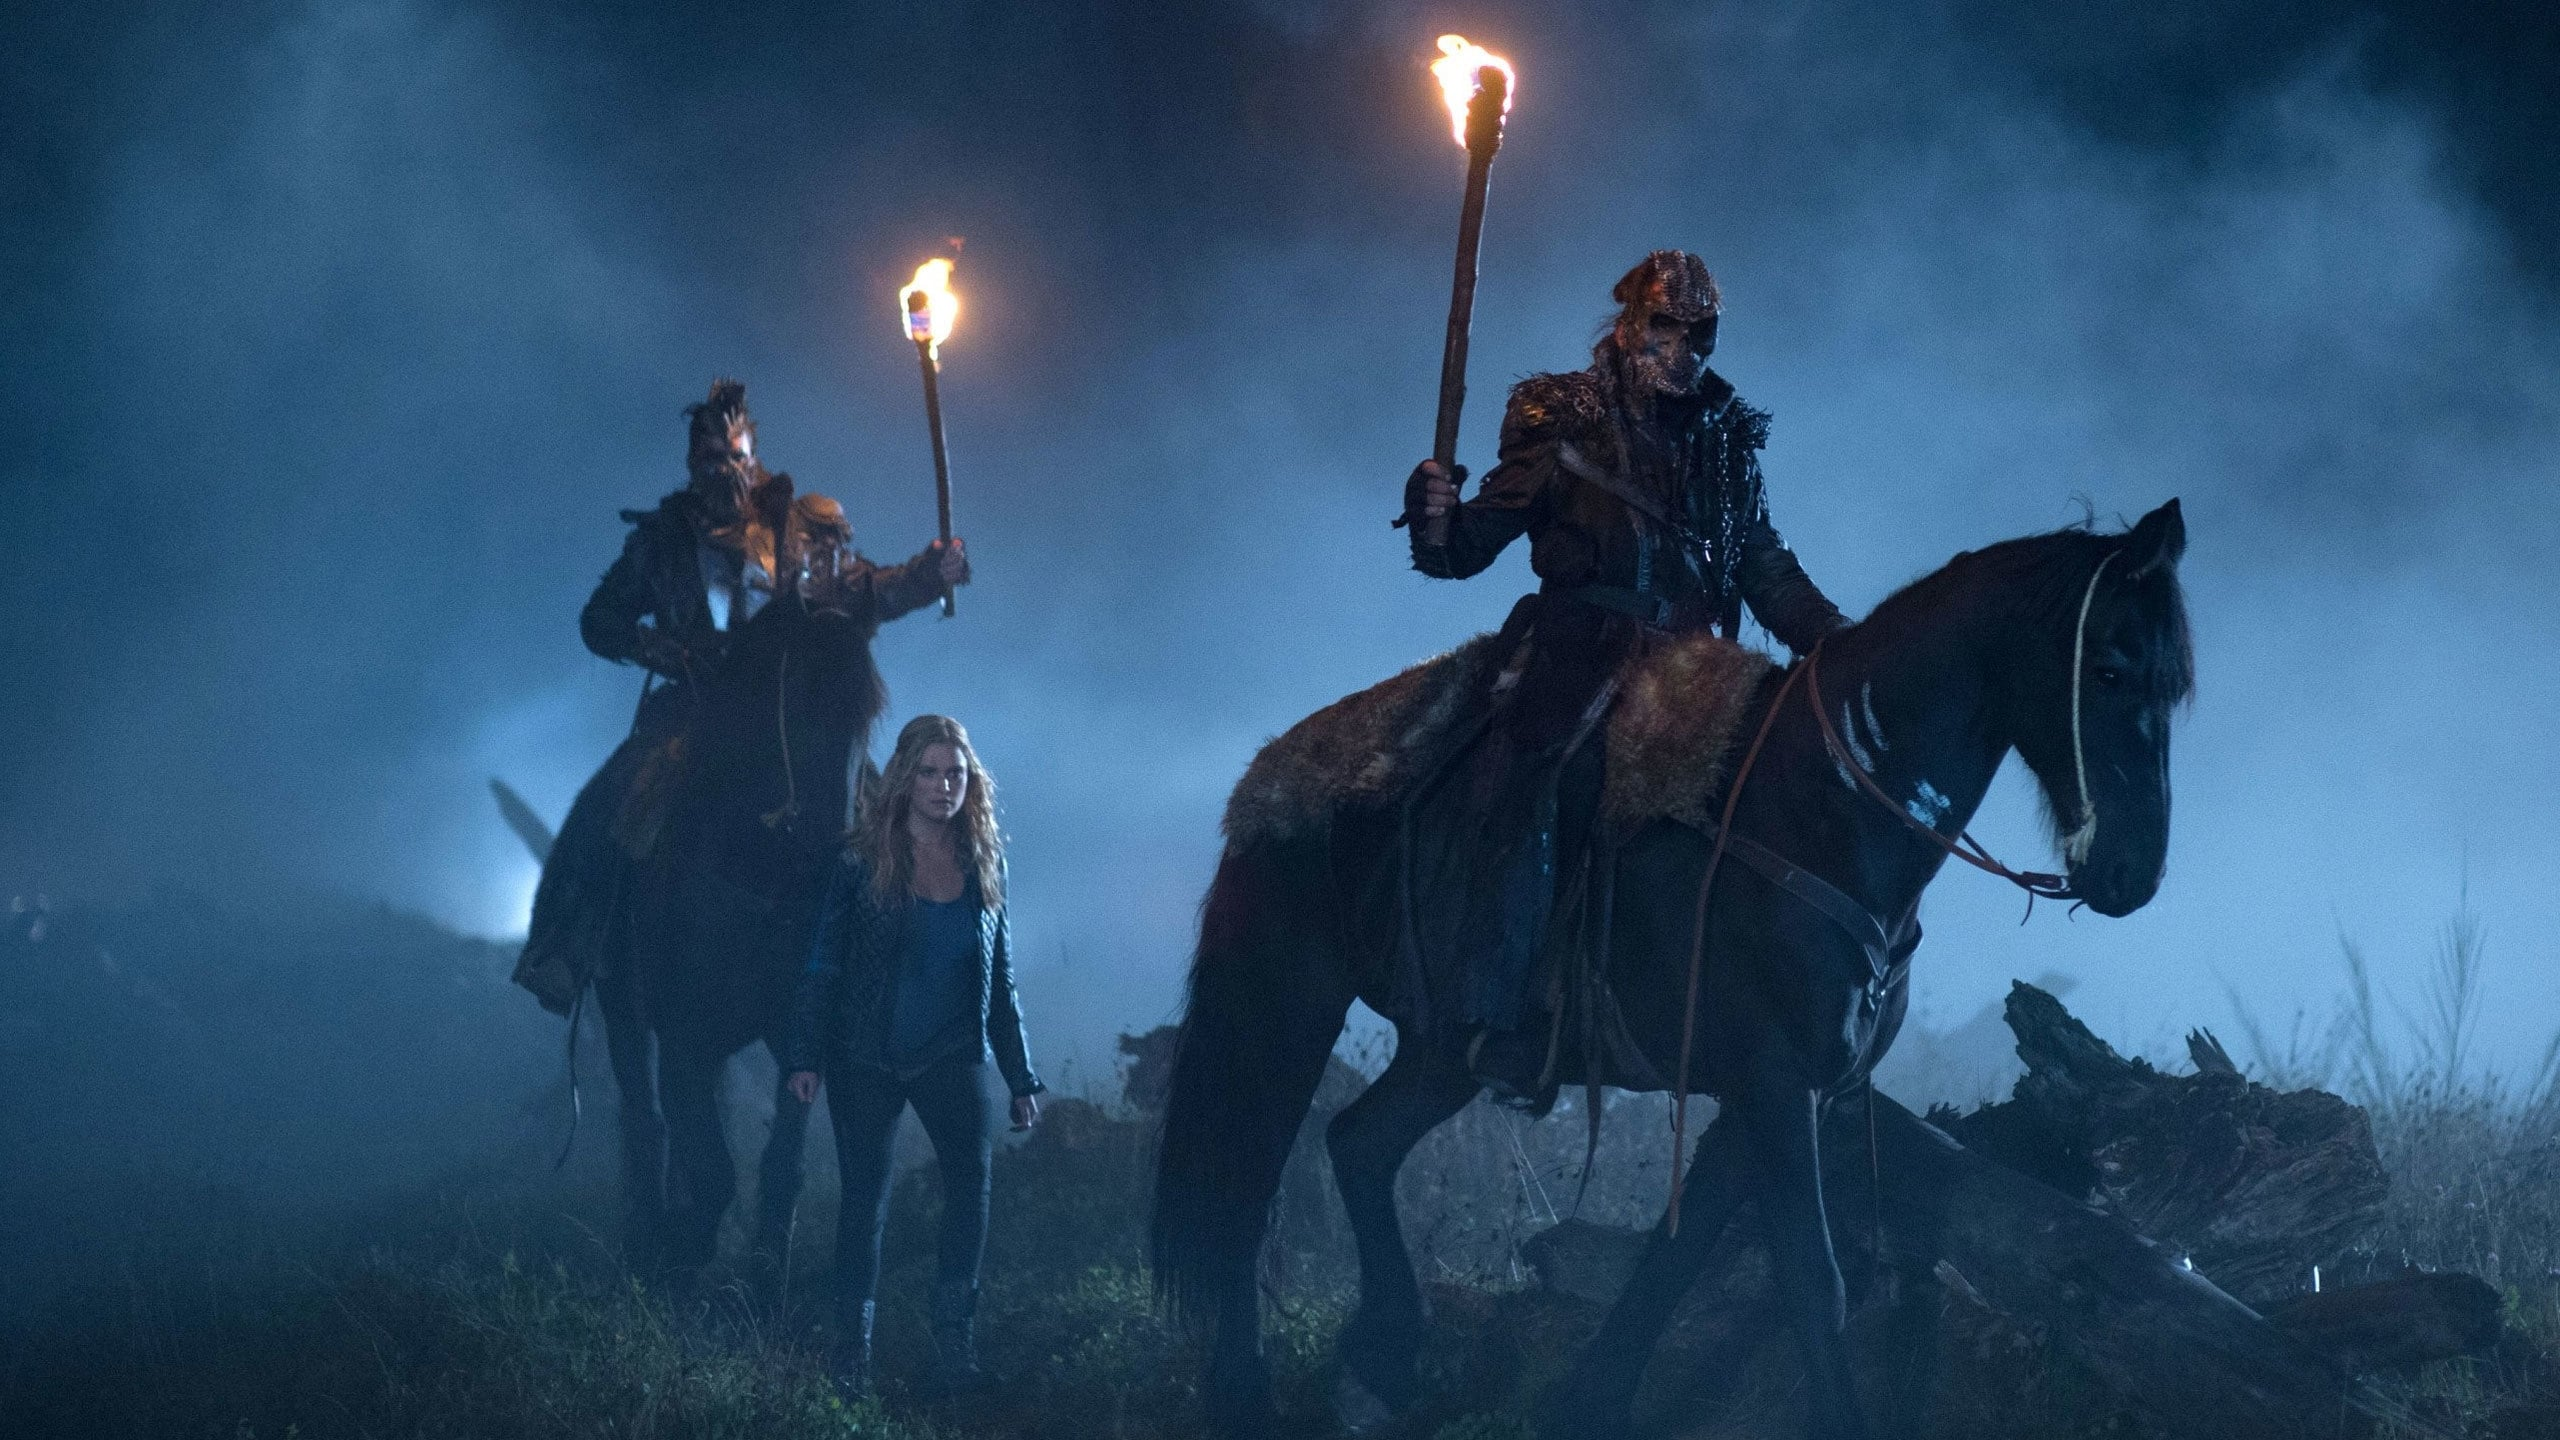 The 100 - Season 2 Episode 8 : Il viaggiatore spaziale